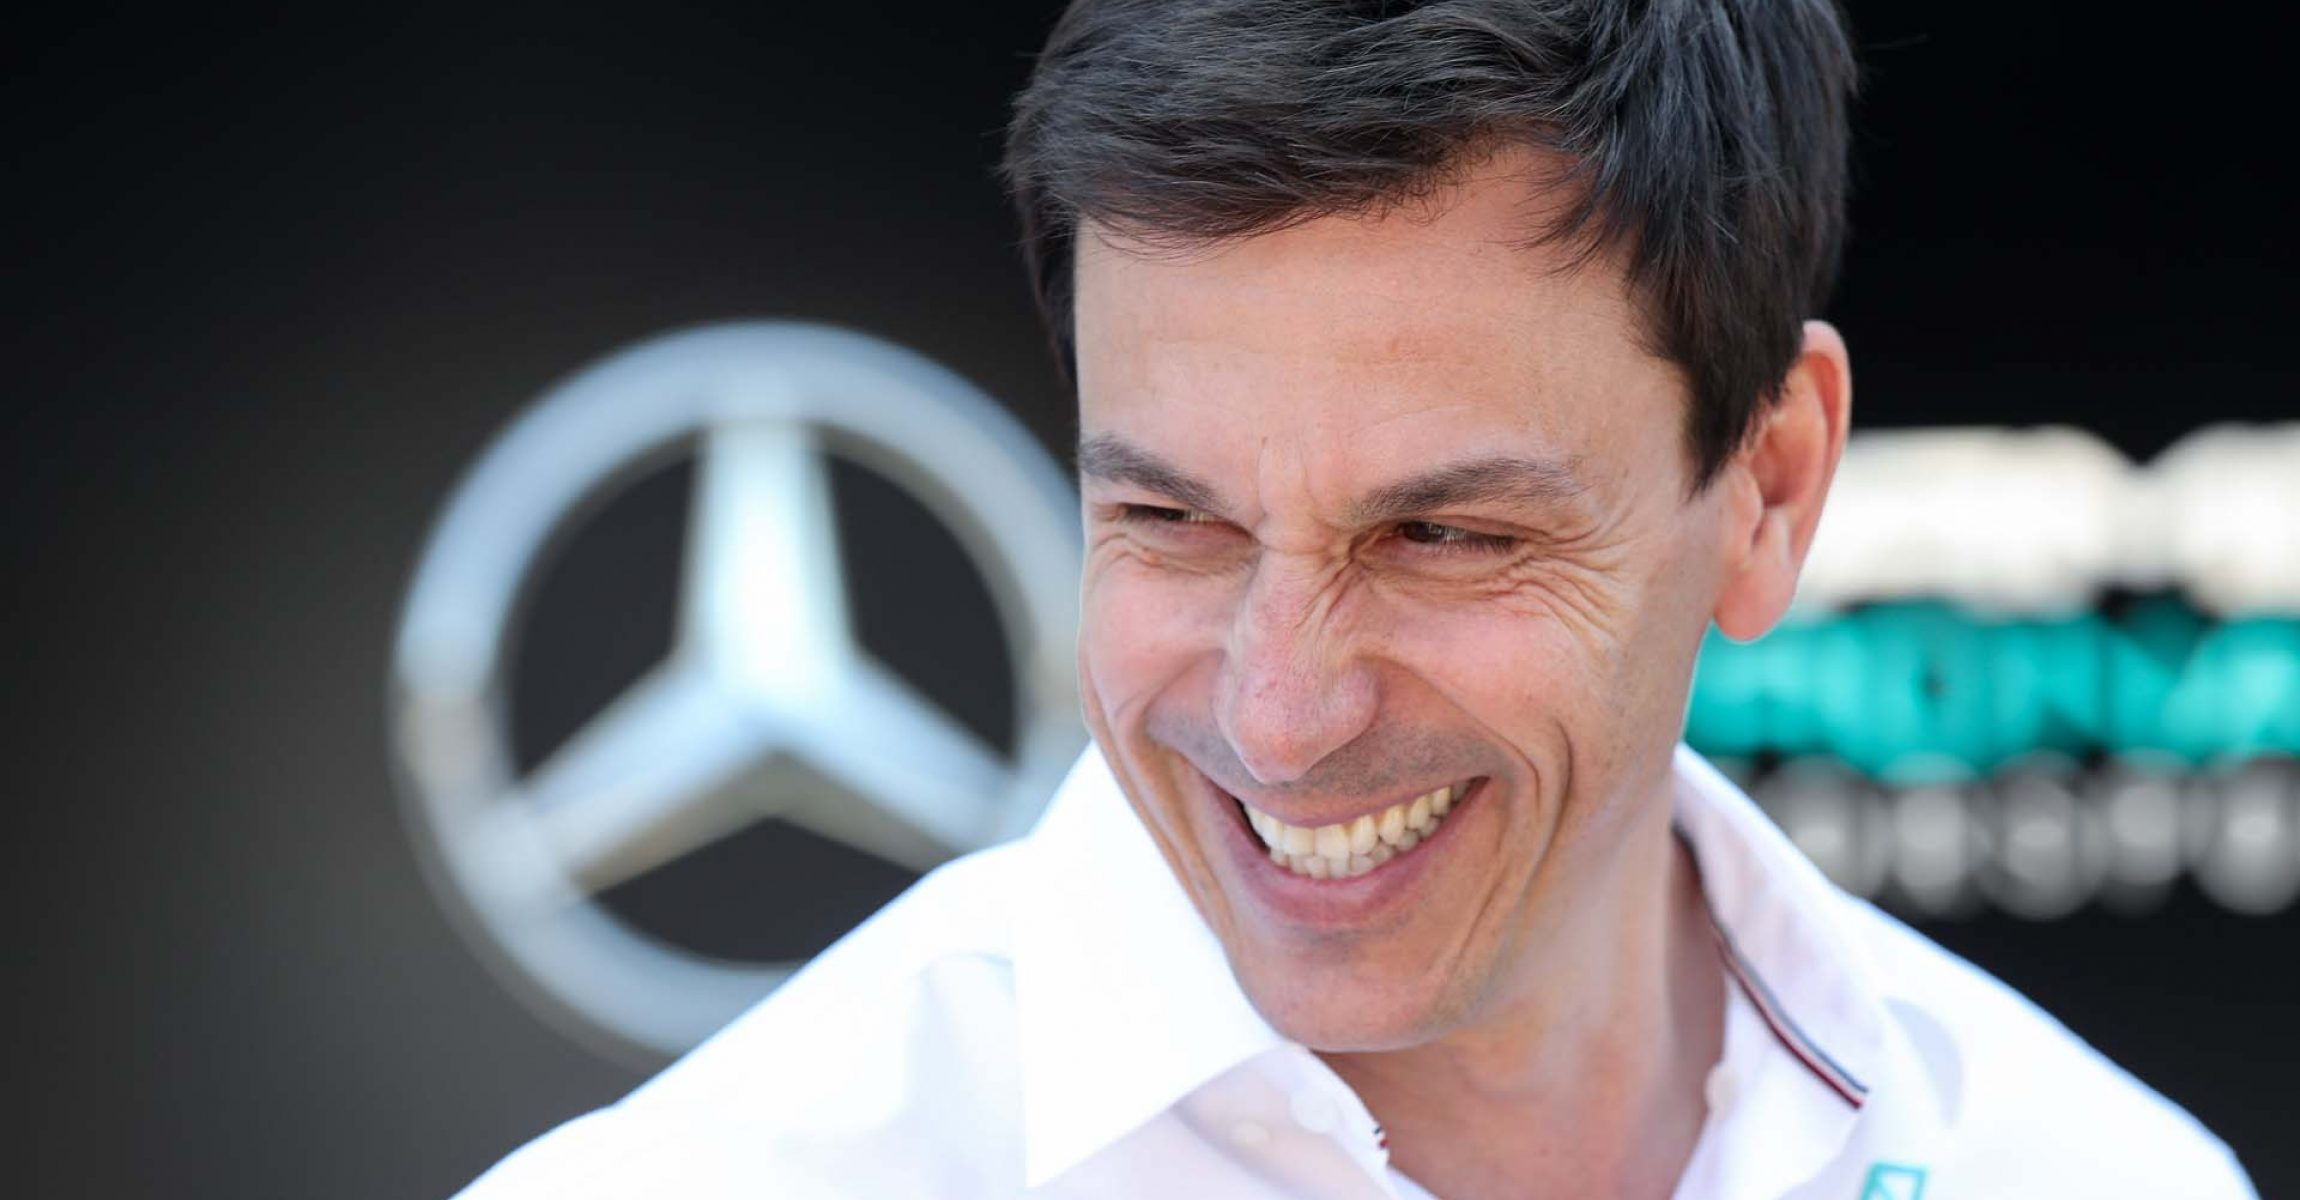 SPIELBERG,AUSTRIA,28.JUN.19 - MOTORSPORTS, FORMULA 1 - Grand Prix of Austria, Red Bull Ring, free practice. Image shows executive director Toto Wolff (Mercedes). Photo: GEPA pictures/ Harald Steiner - For editorial use only. Image is free of charge.